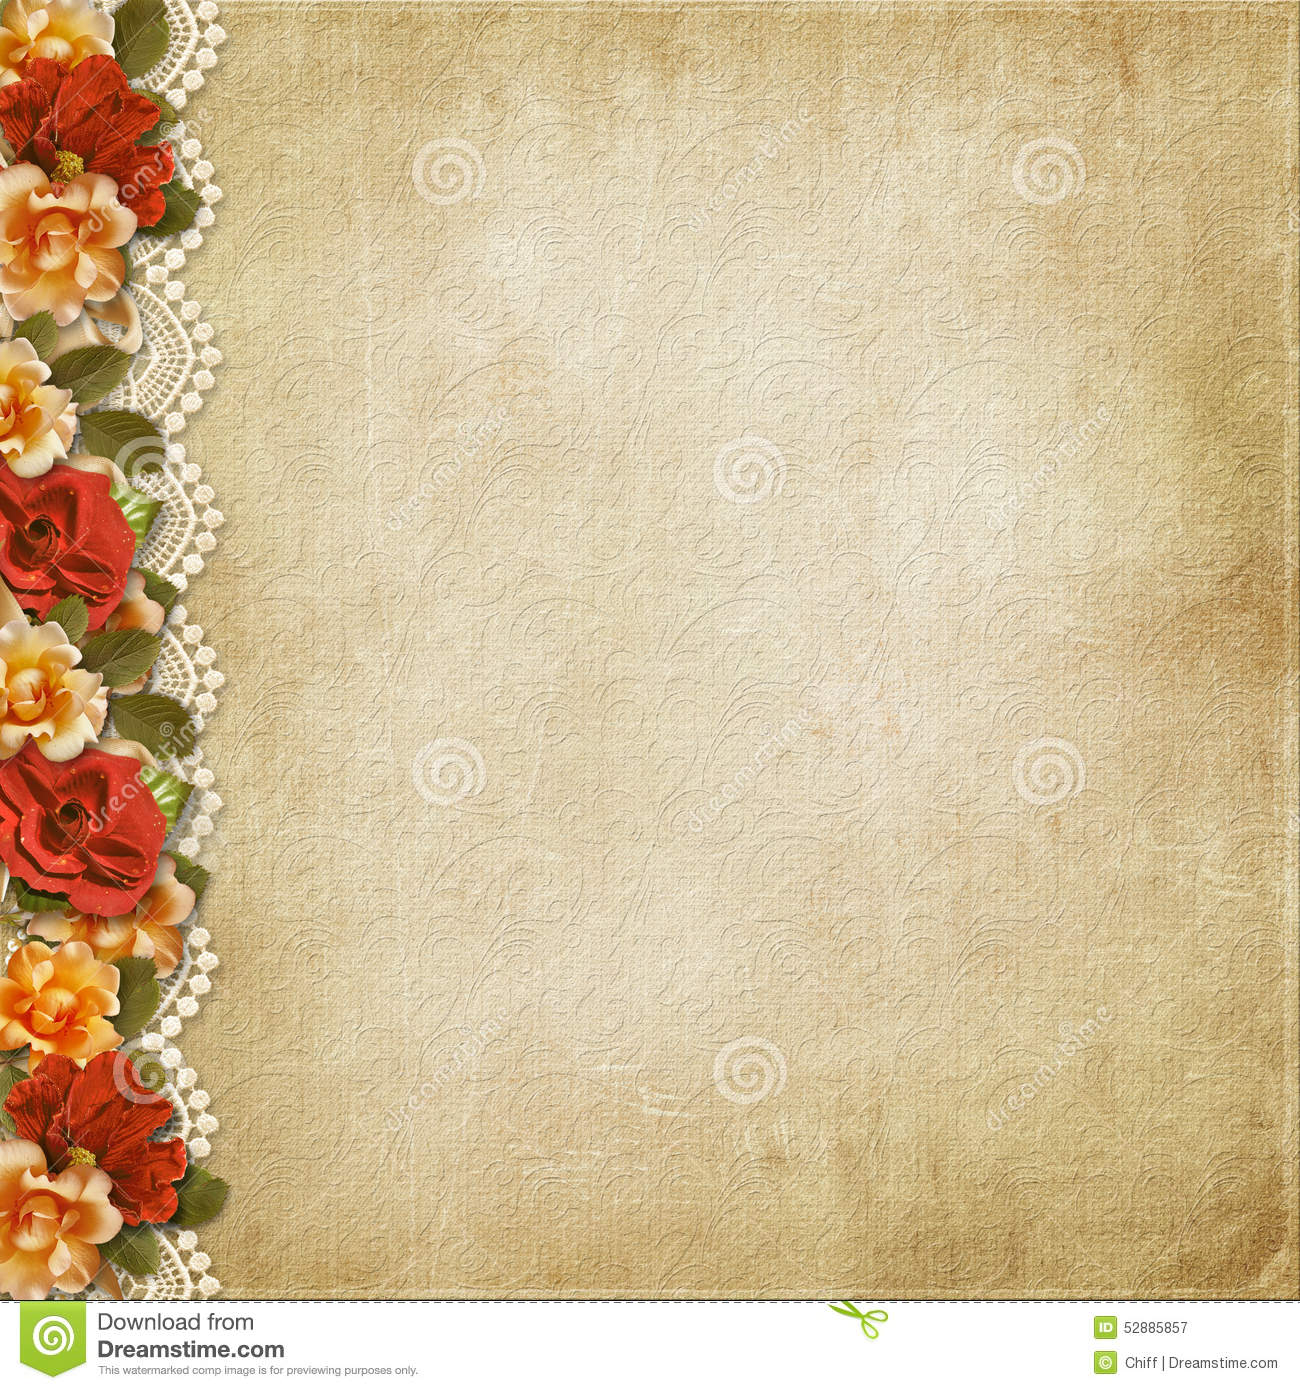 Vintage Flower Book Cover : Vintage background with a border of flowers and lace stock